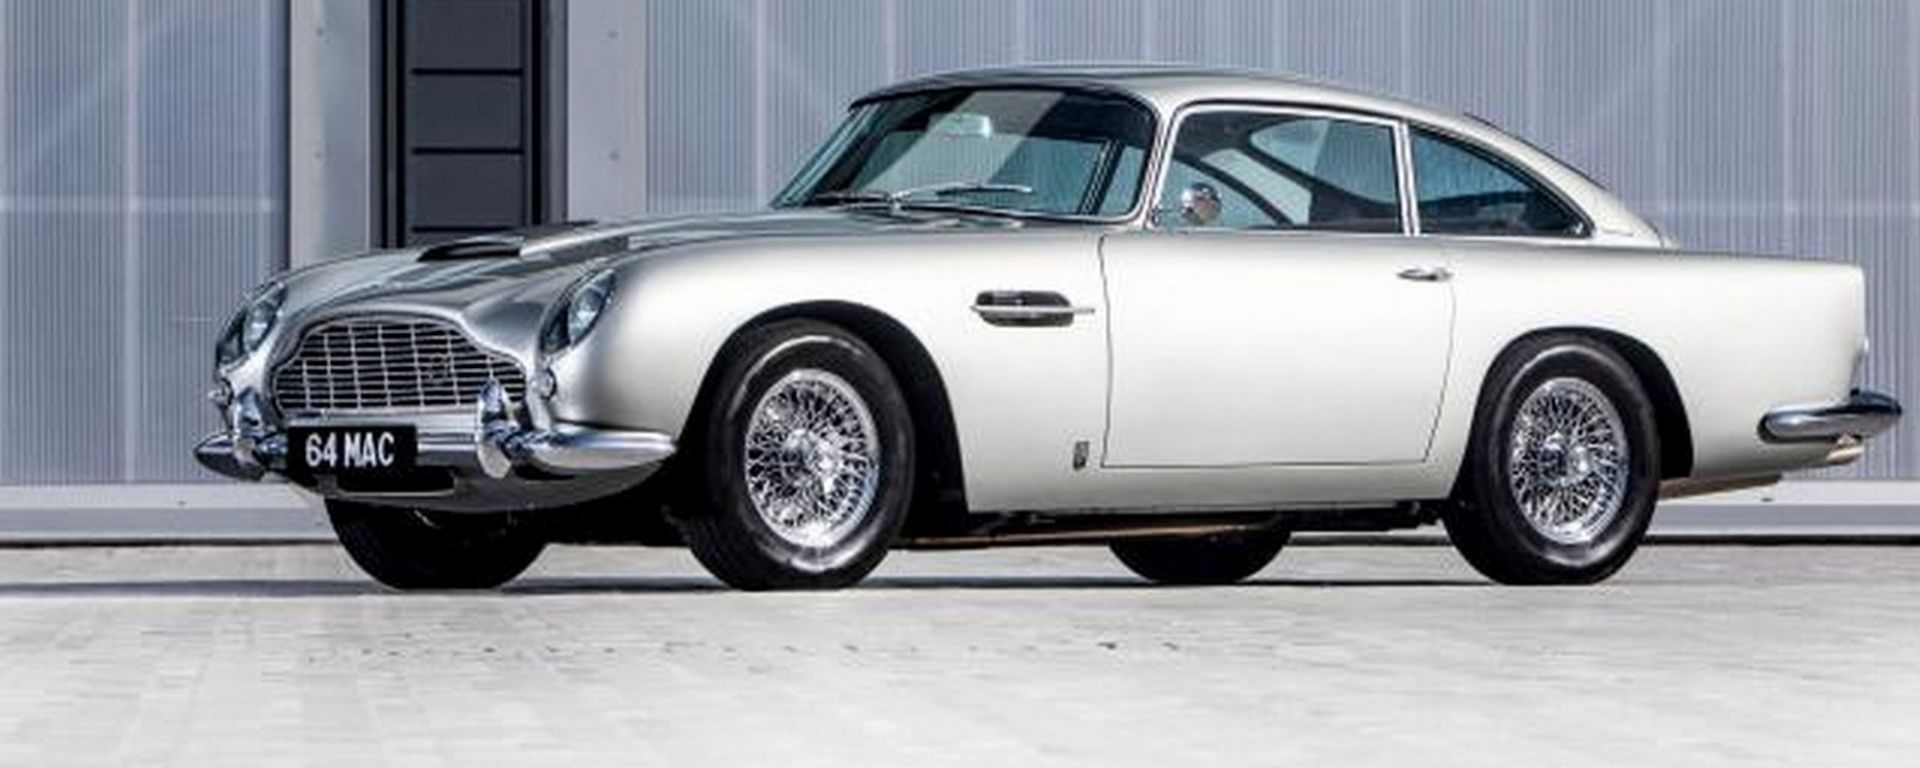 Aston Martin DB5: all'asta quella di Paul McCartney